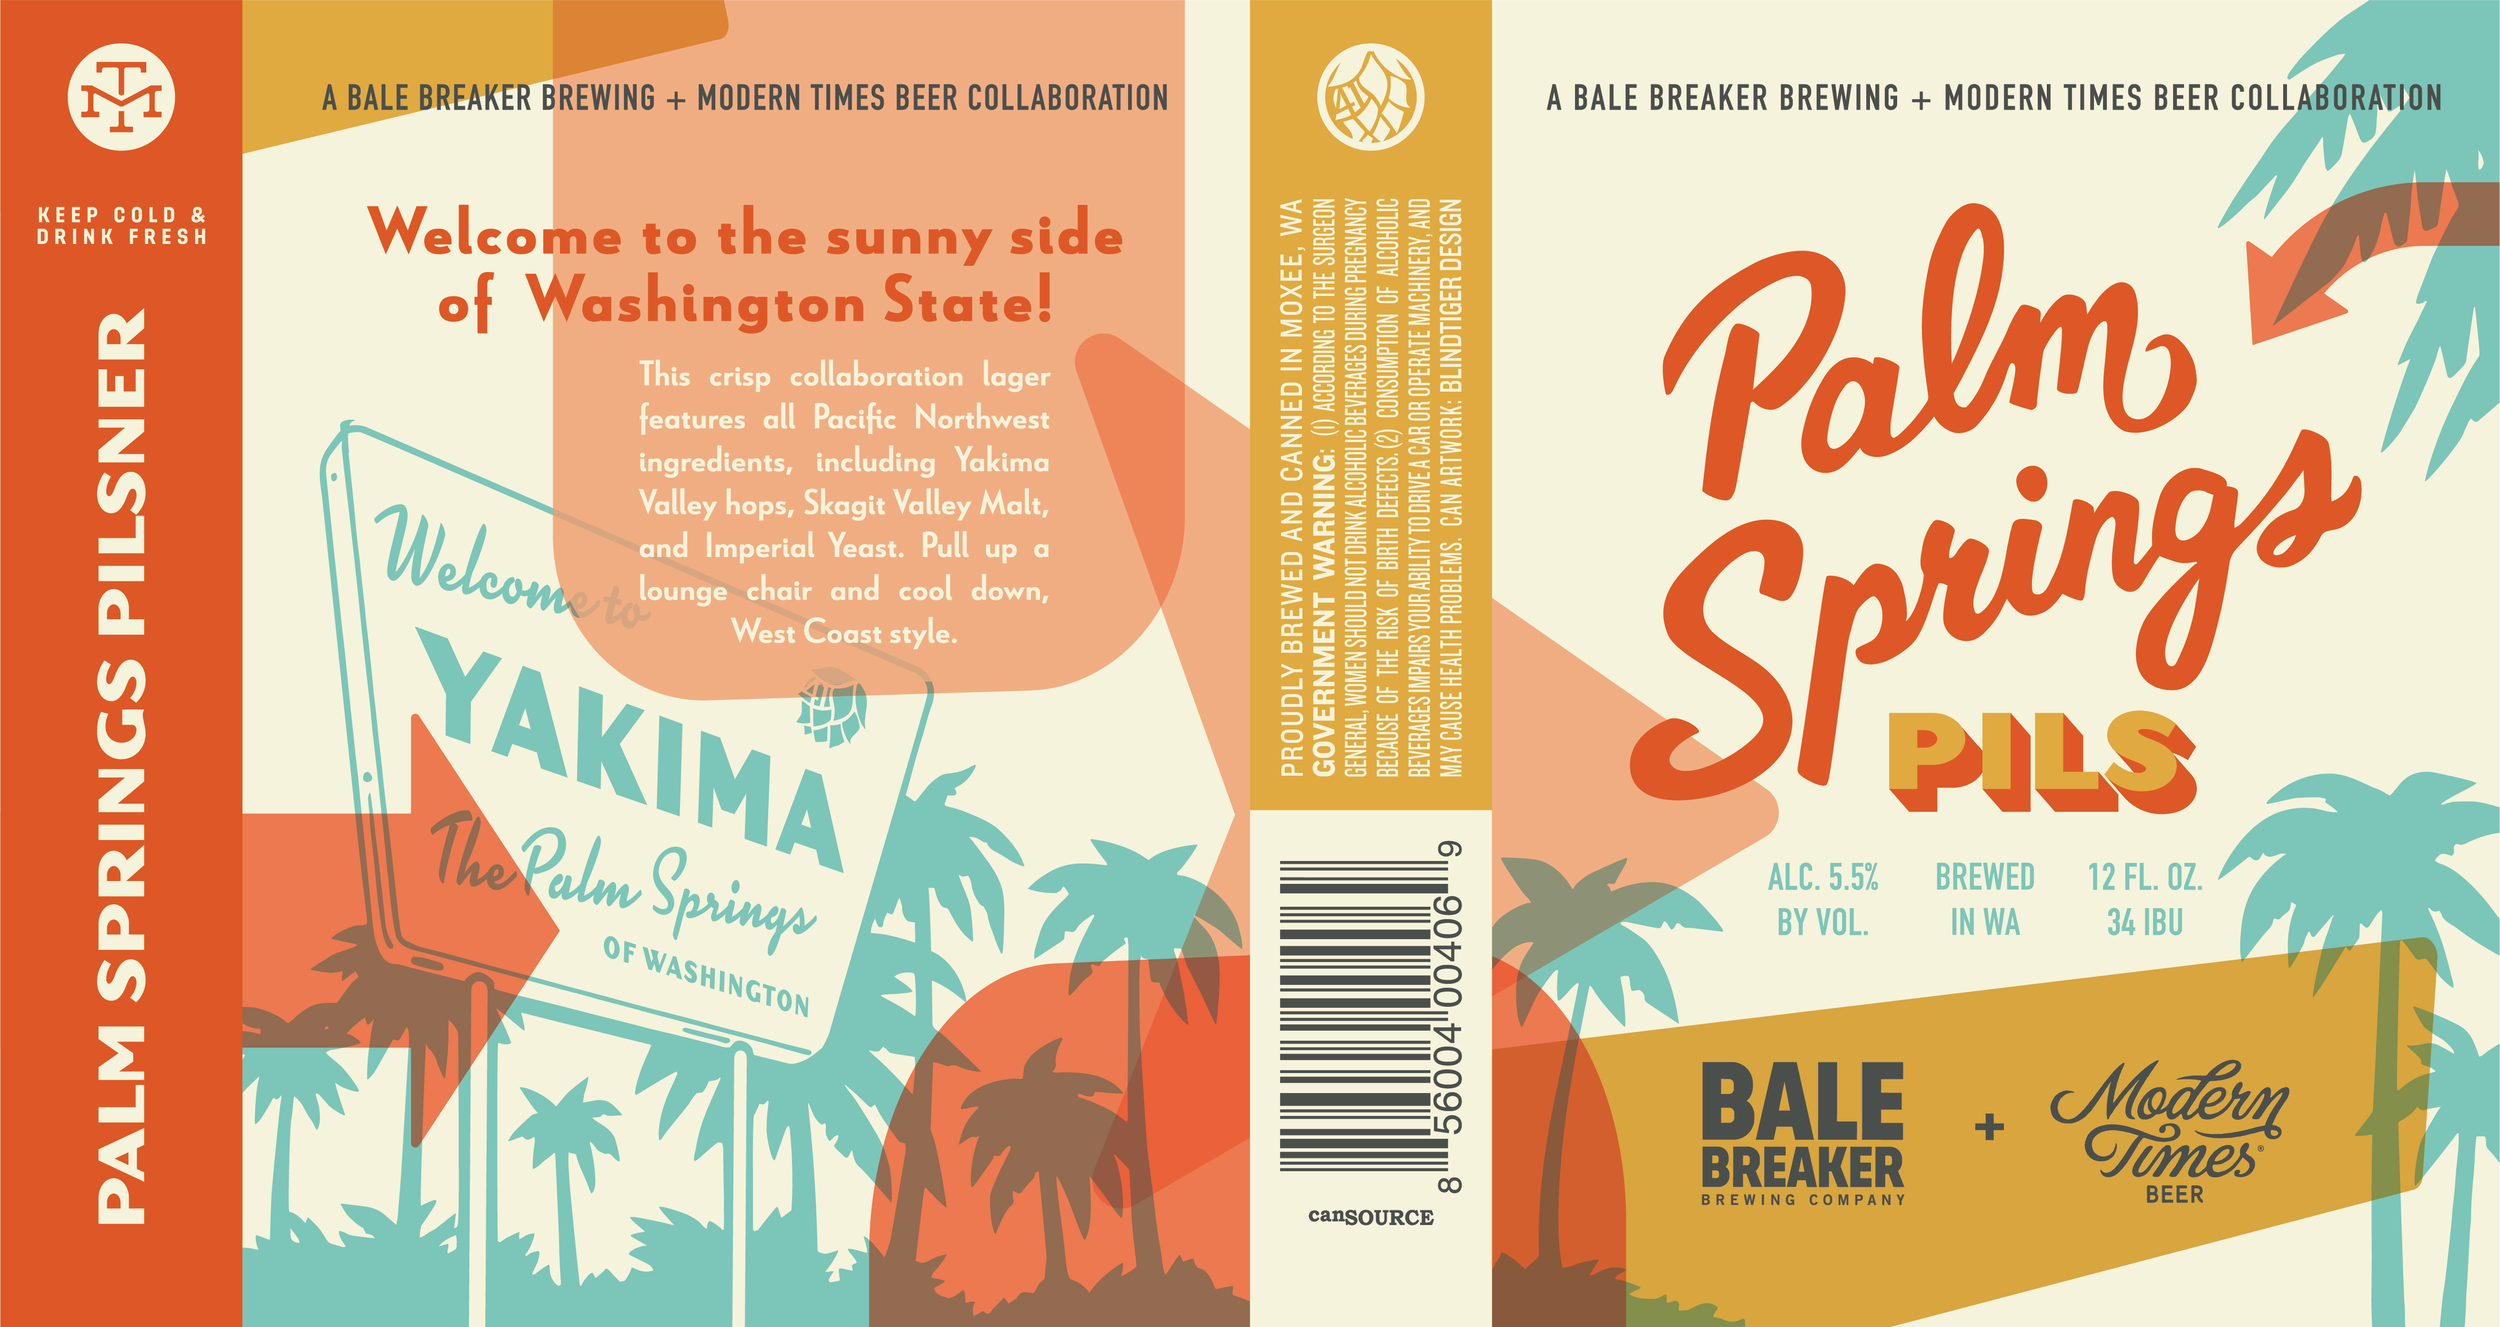 Paying Homage to the Palm Springs of Washington / World Brand Design Society